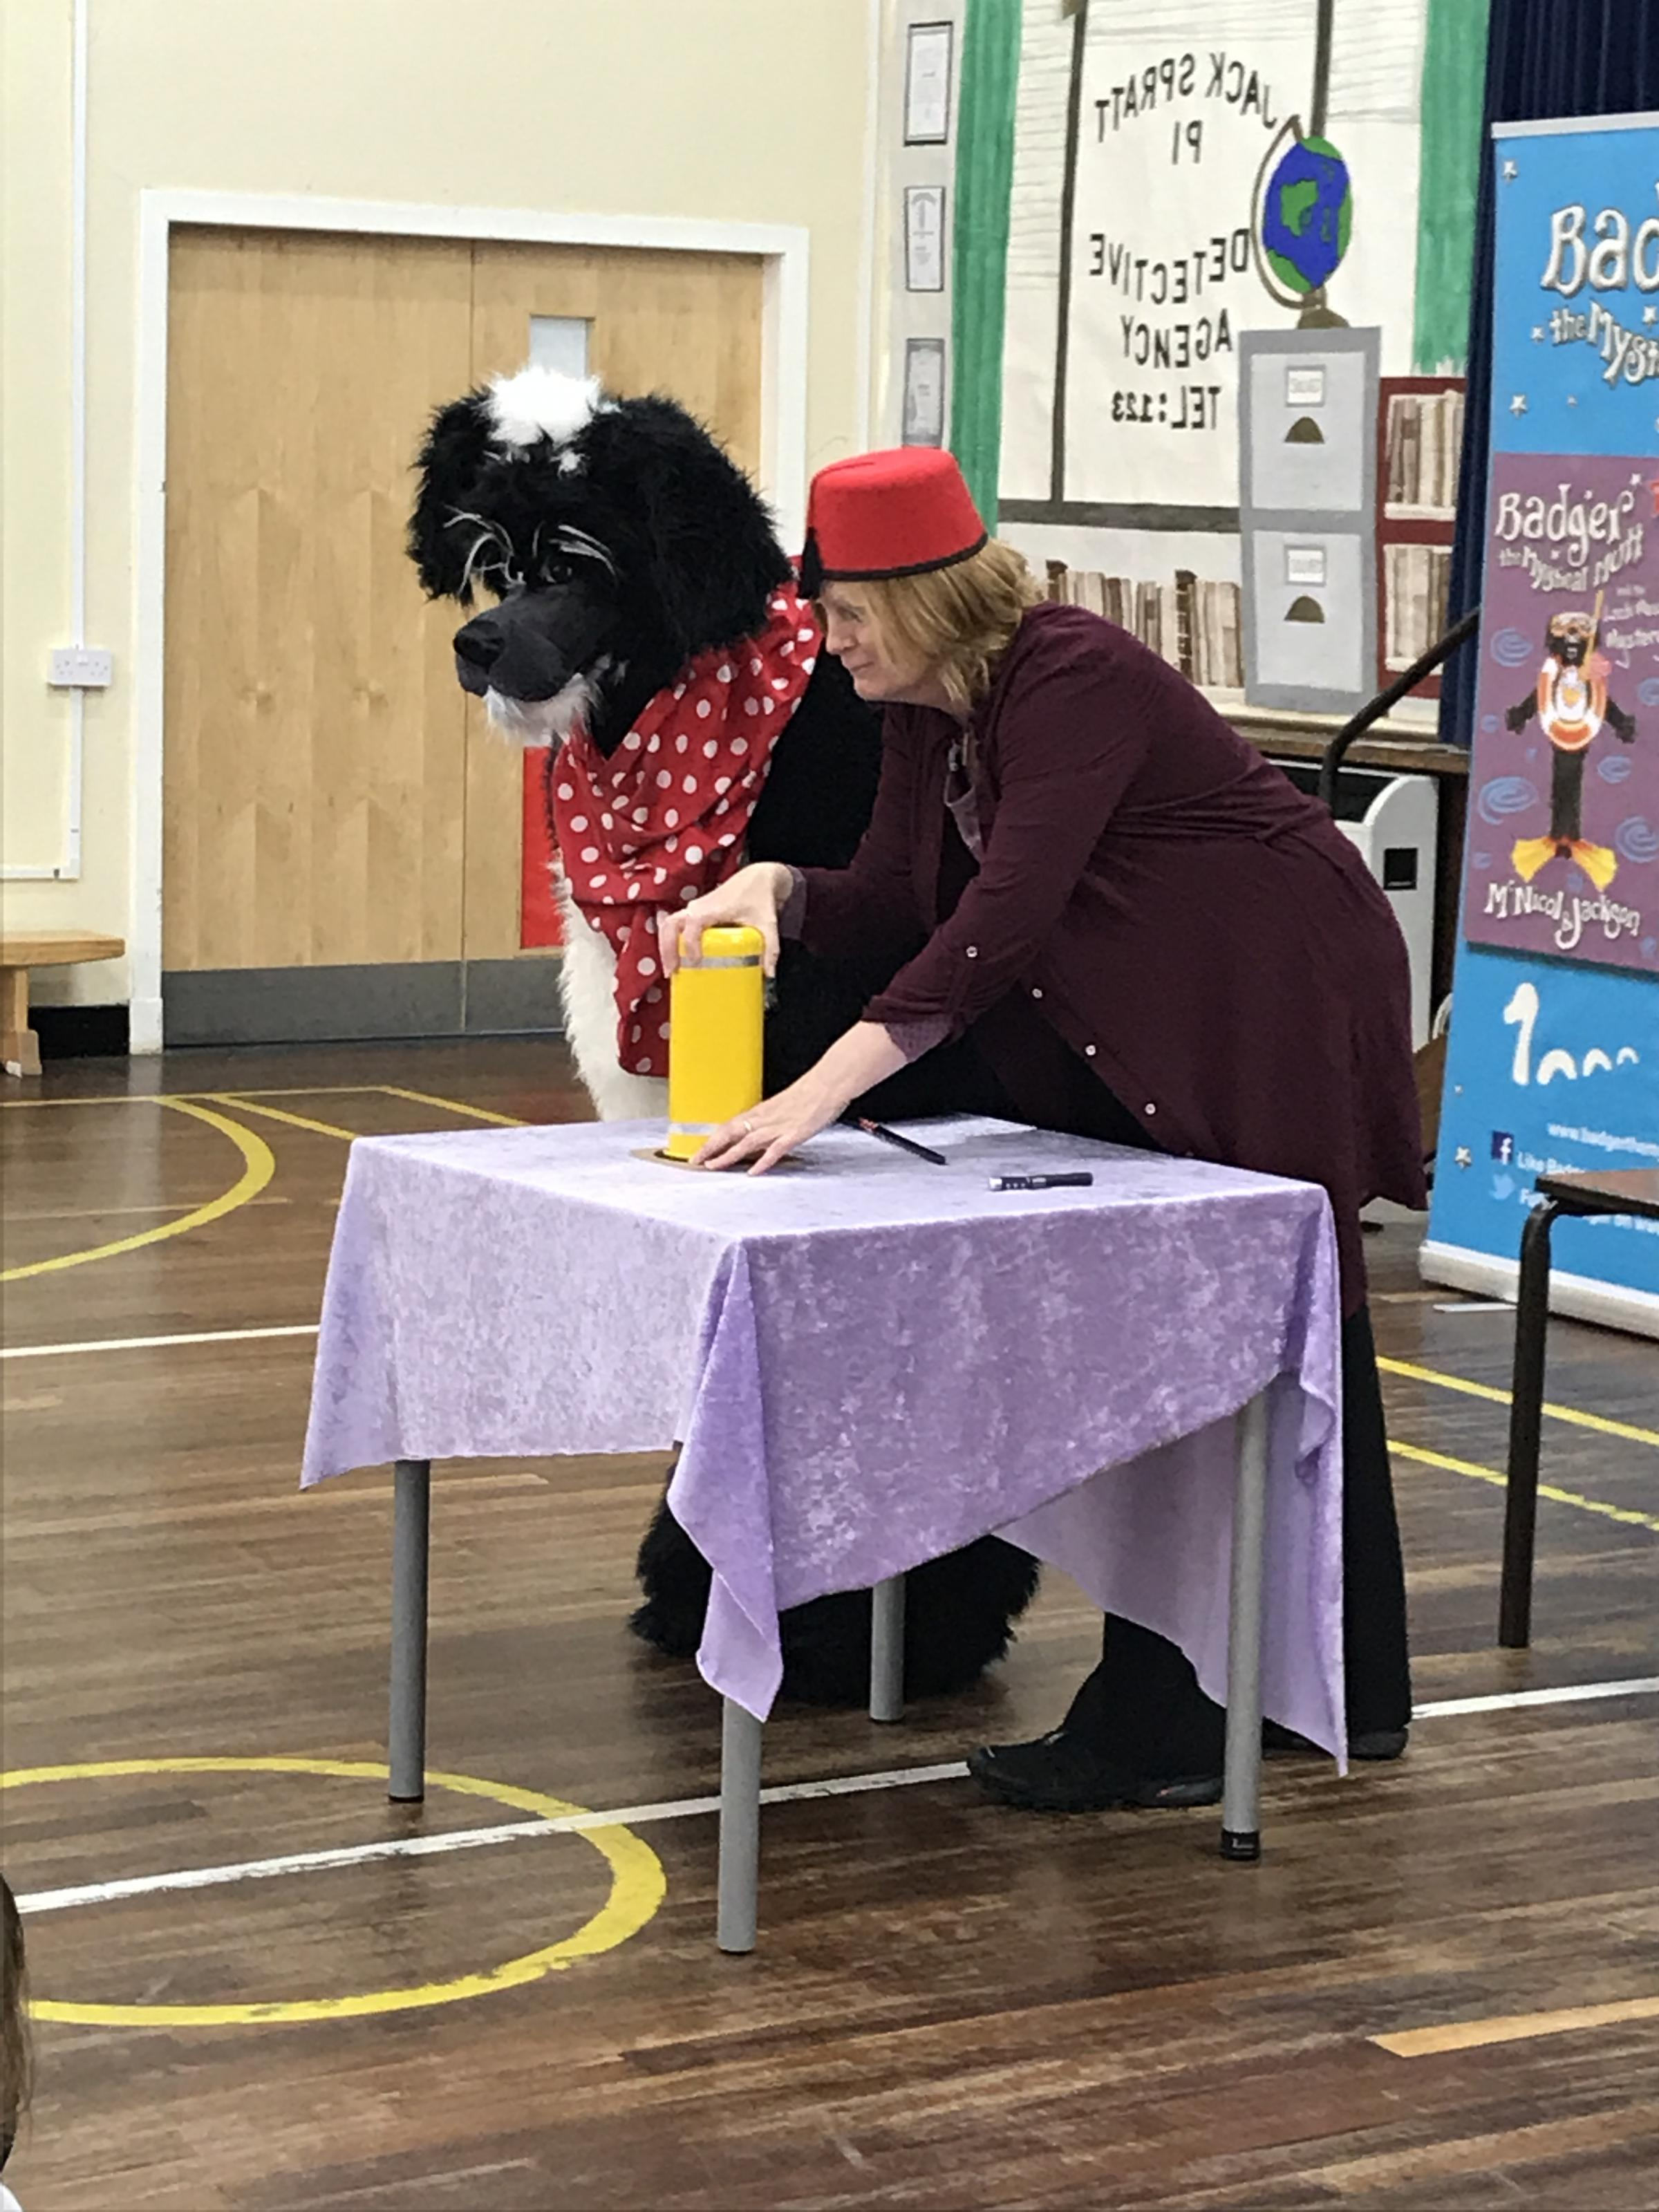 Badger the Mystical Mutt authors Lyn McNicol (dressed as Badger ) and Laura Jackson entertaining pupils from P1-3